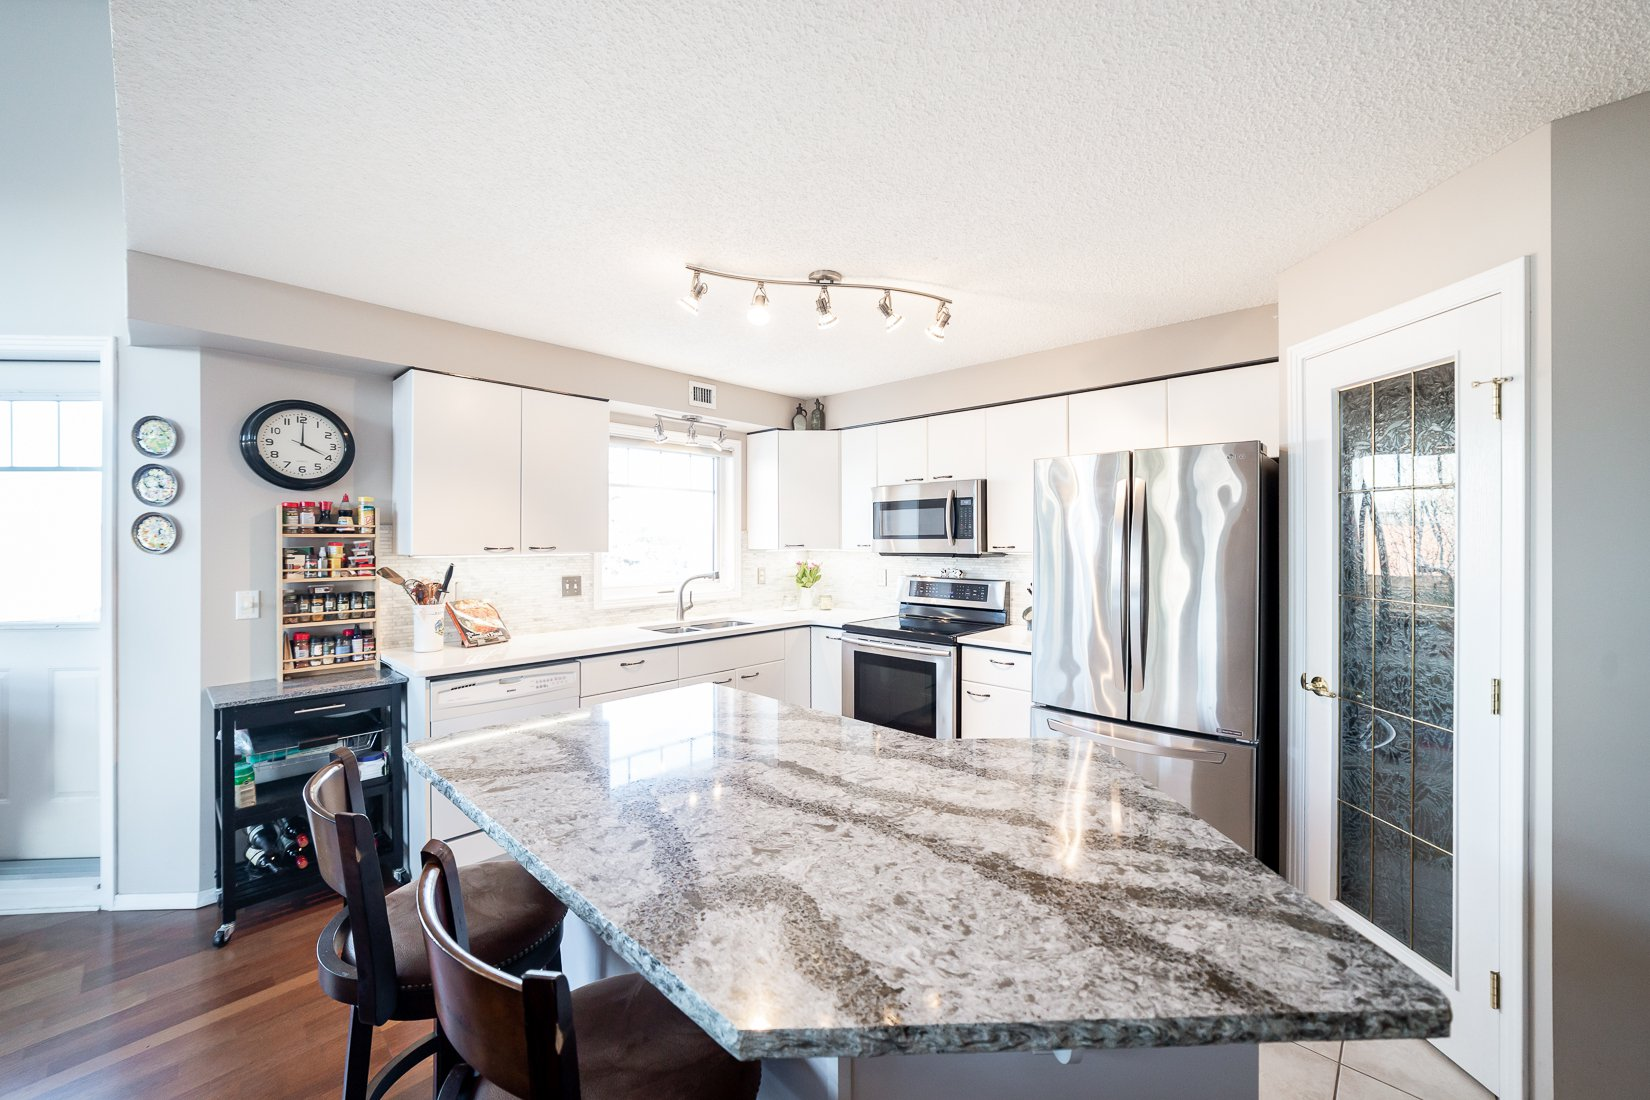 Kitchen - Marble Backsplash; Large Island